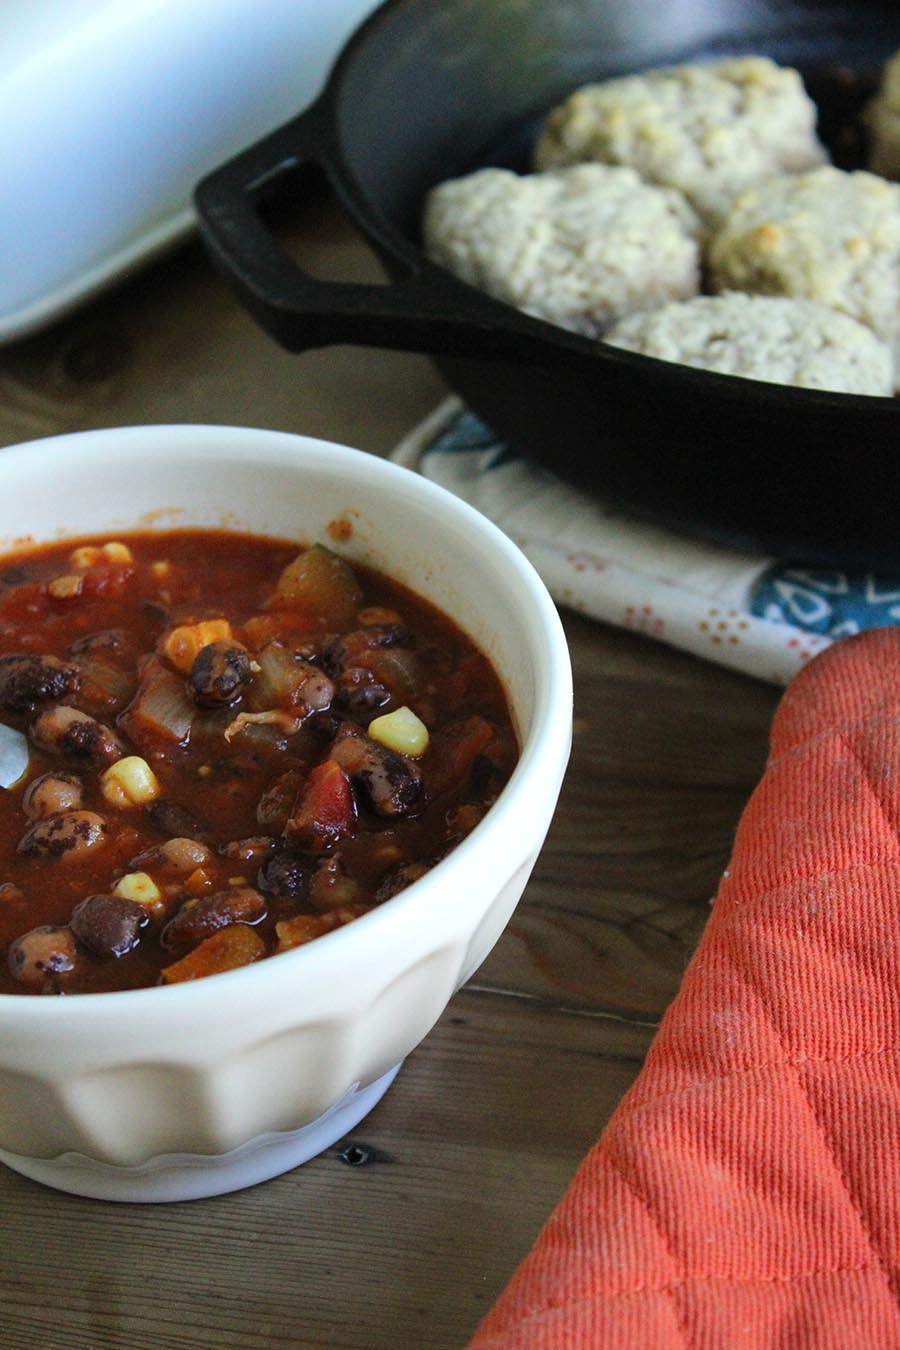 Vegetarian Crockpot Chili Recipe - for an easy hands off hearty chili!